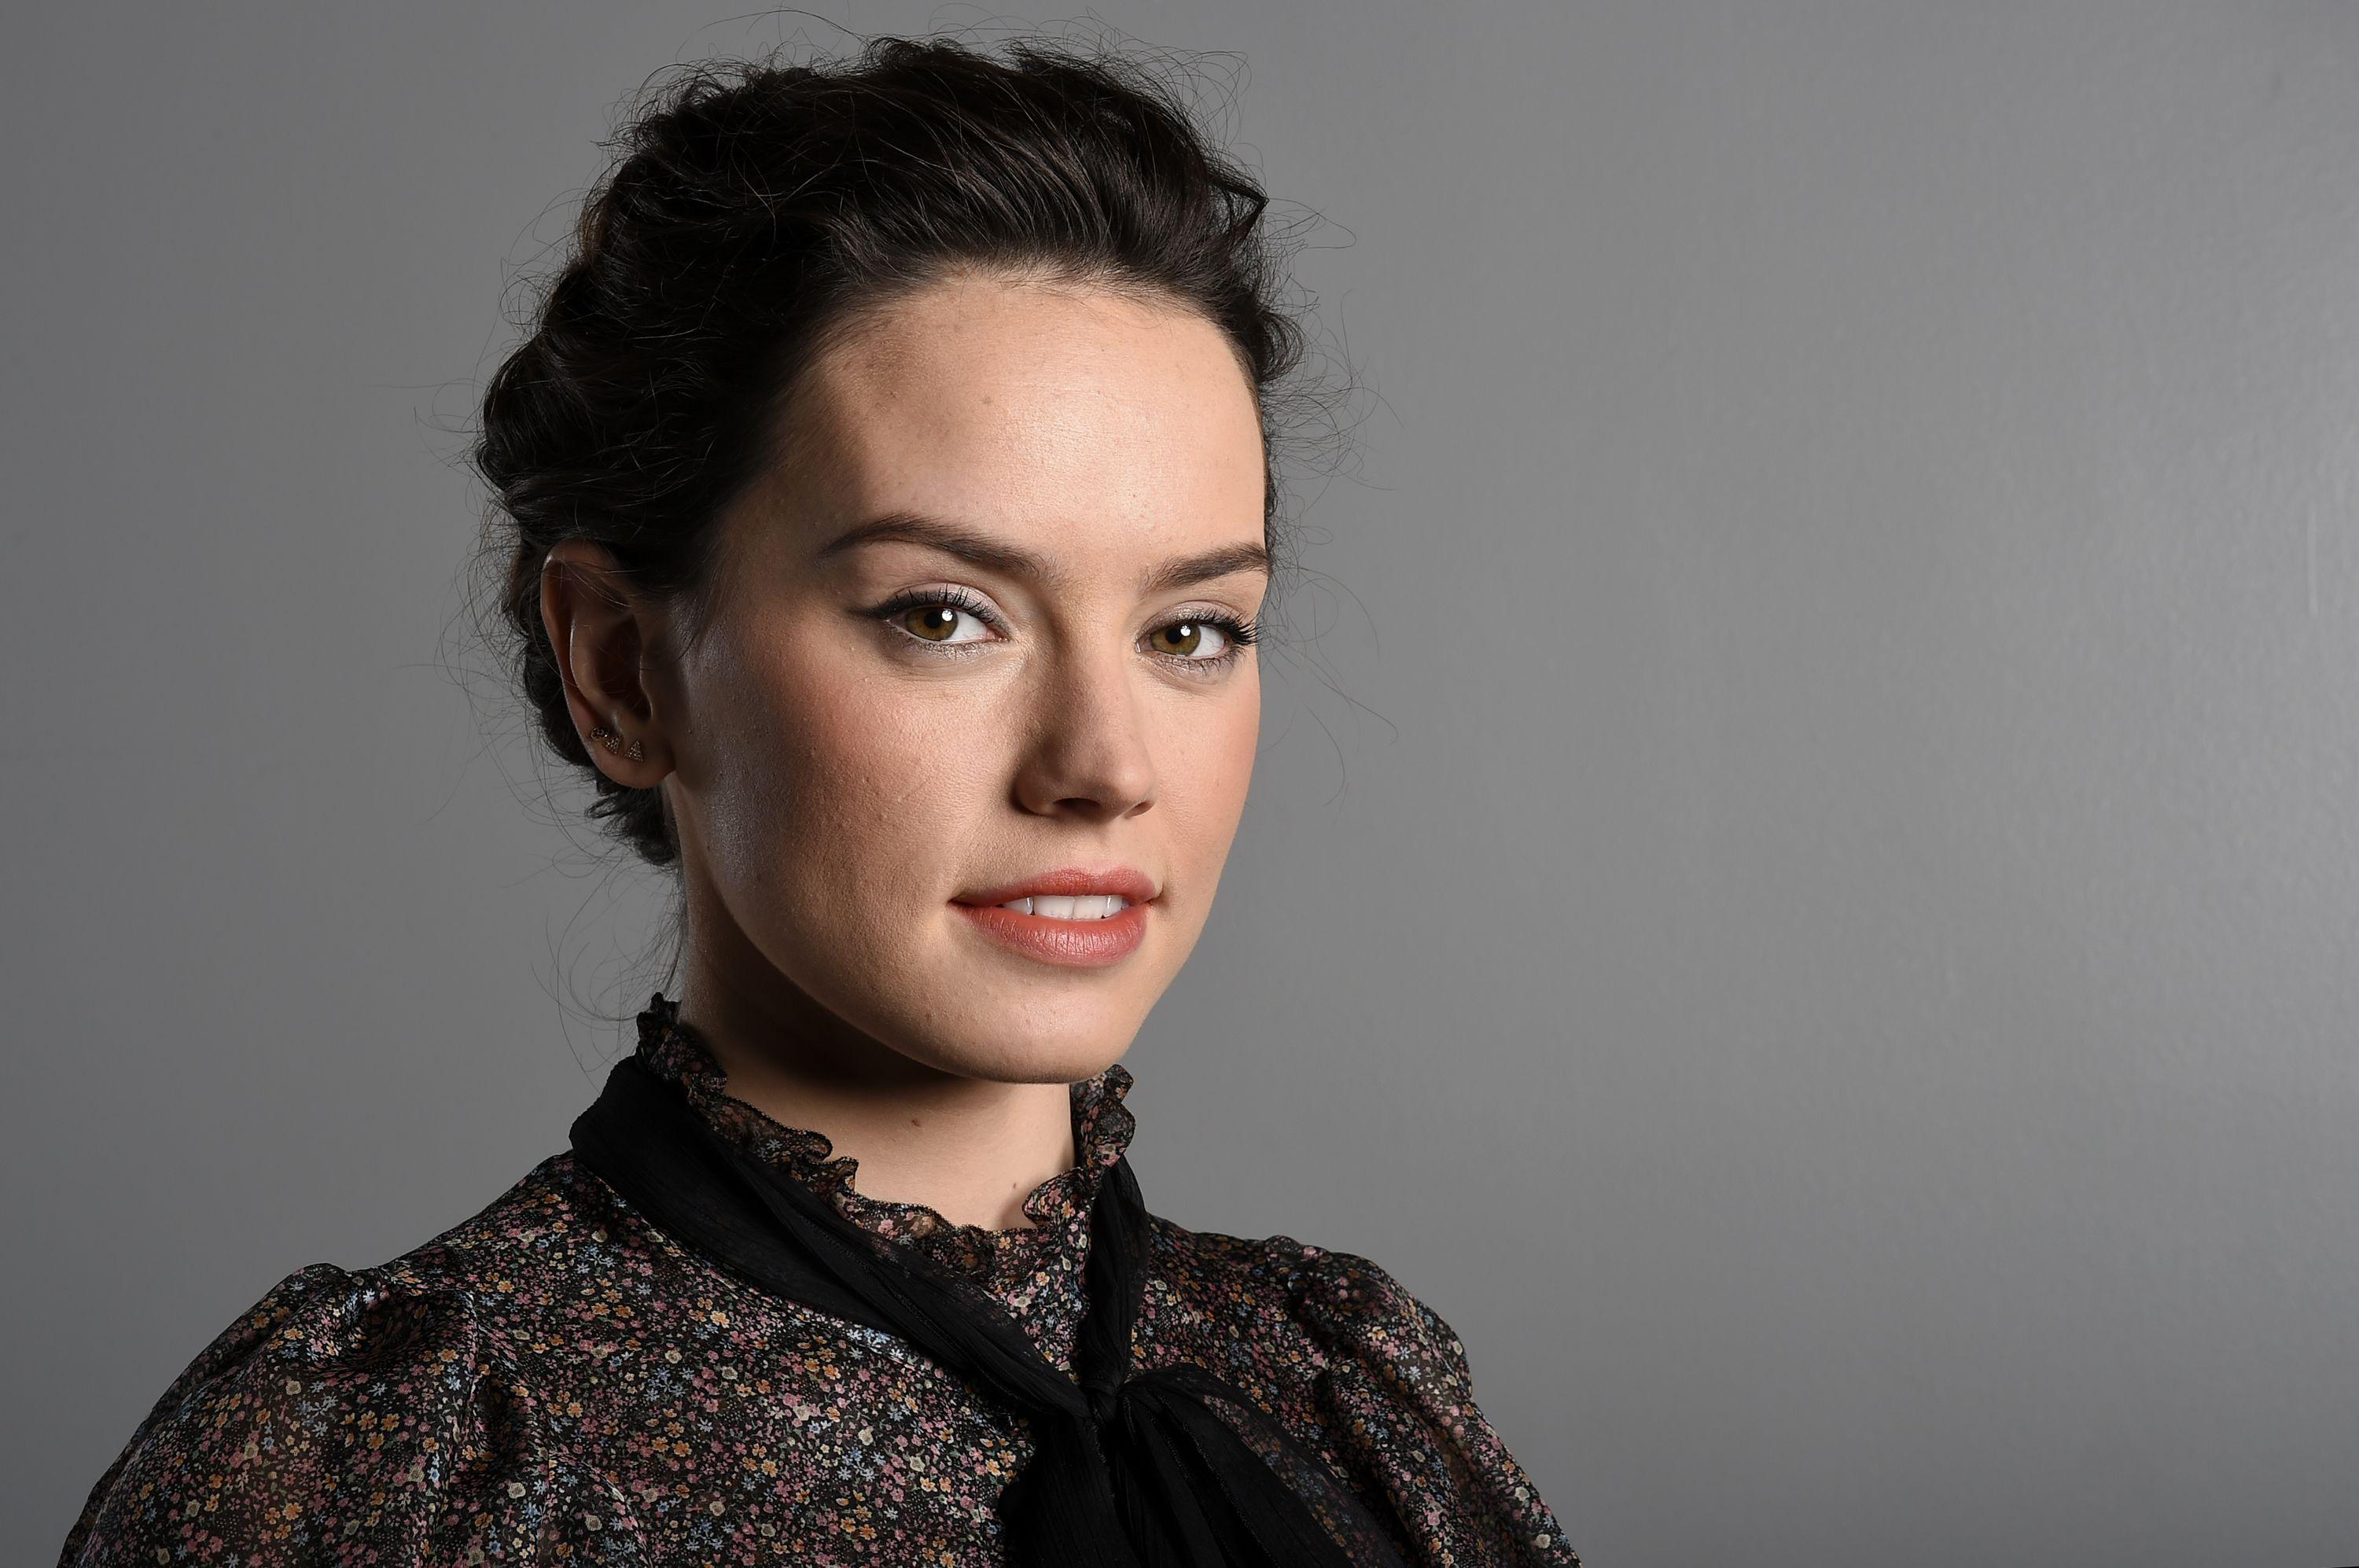 Daisy Ridley Wallpapers, Pictures, Images